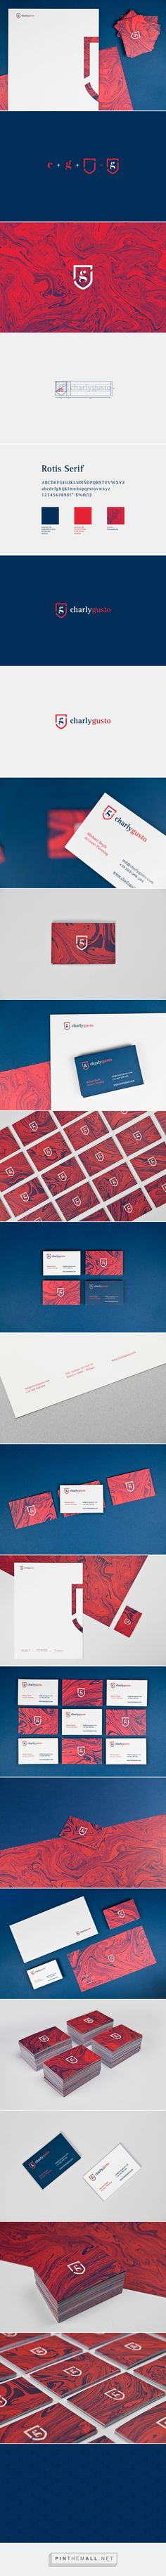 "Charly Gusto has used a crest with fusion of lowercase serif ""g"" and ""c"" as a logo. He has followed a colour scheme of red white and blue as a brand identity. The logo has been applied on business cards, web and the side of the crest has been used for a letter. The simple design makes it recognisable across the mediums, which is why I think cutting off most of the logo works on the letter paper."